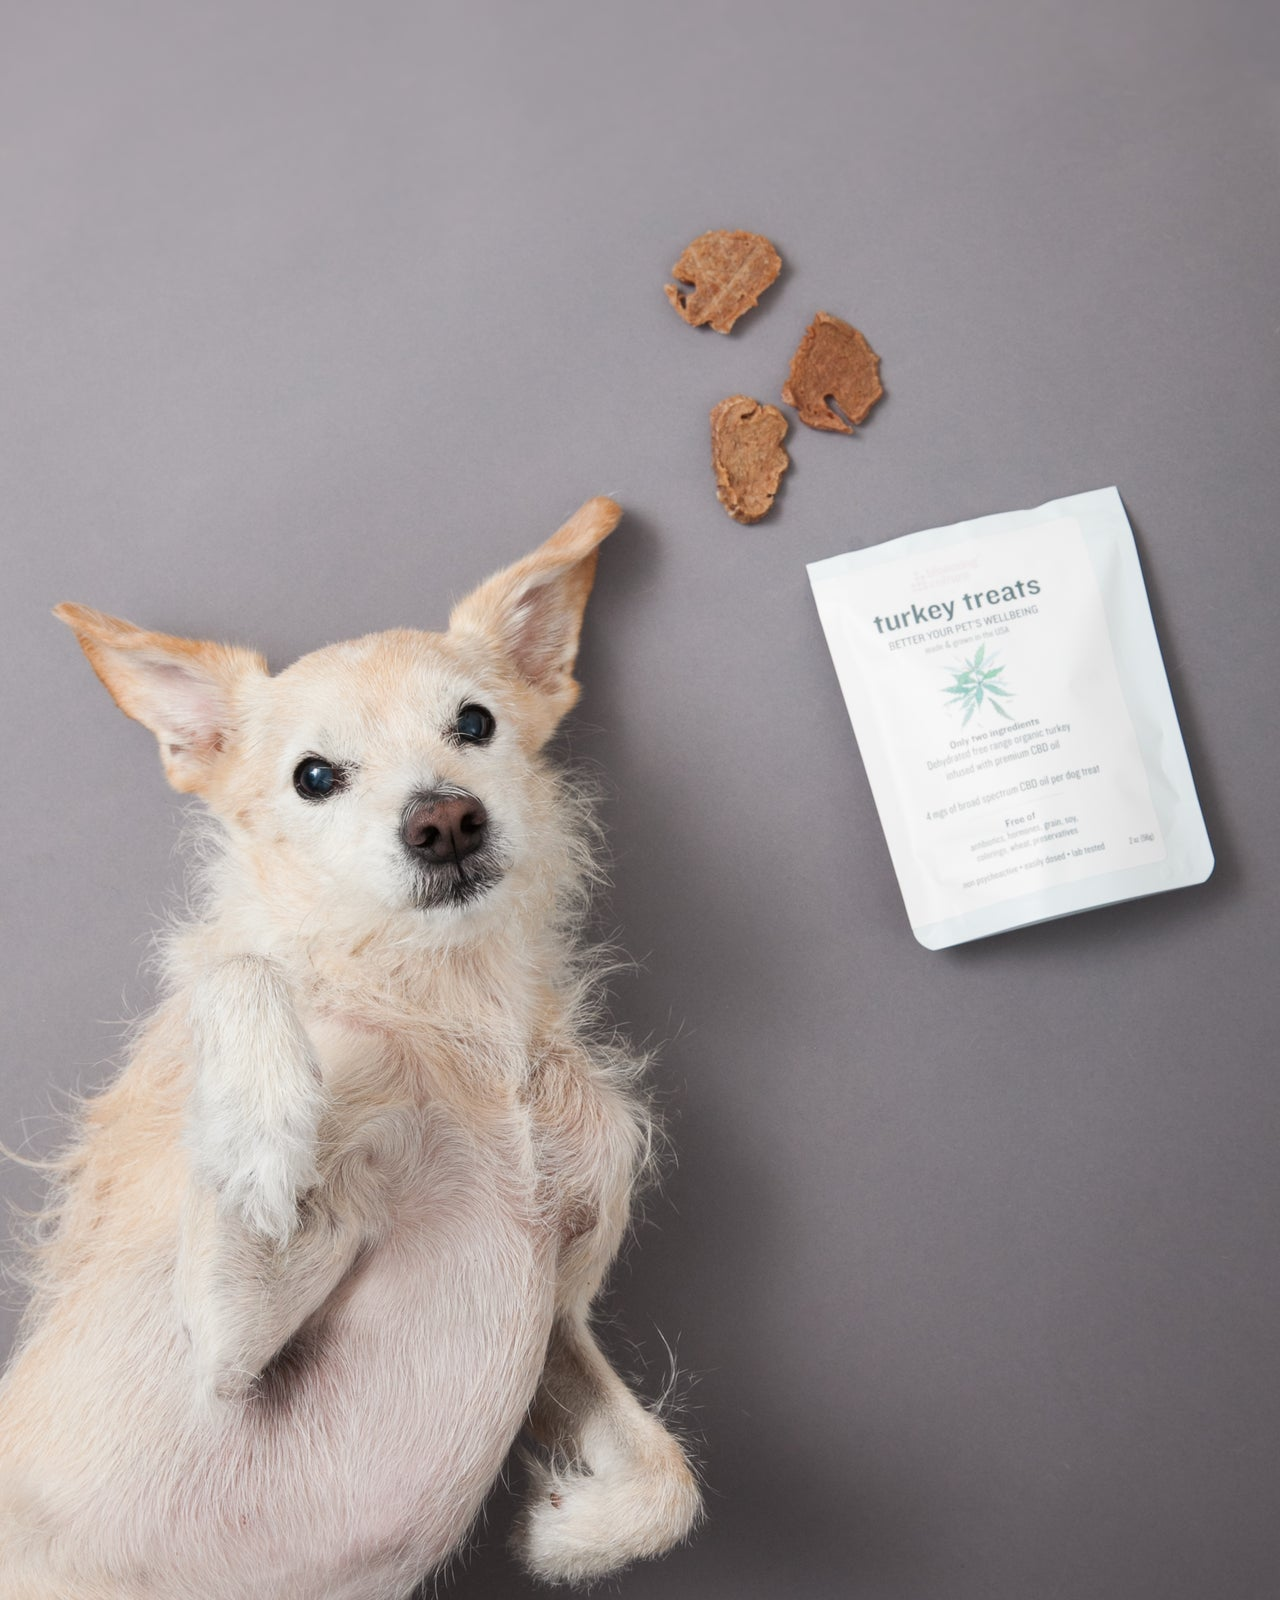 Dehydrated turkey treats for dogs infused with CBD oil | Blooming Culture